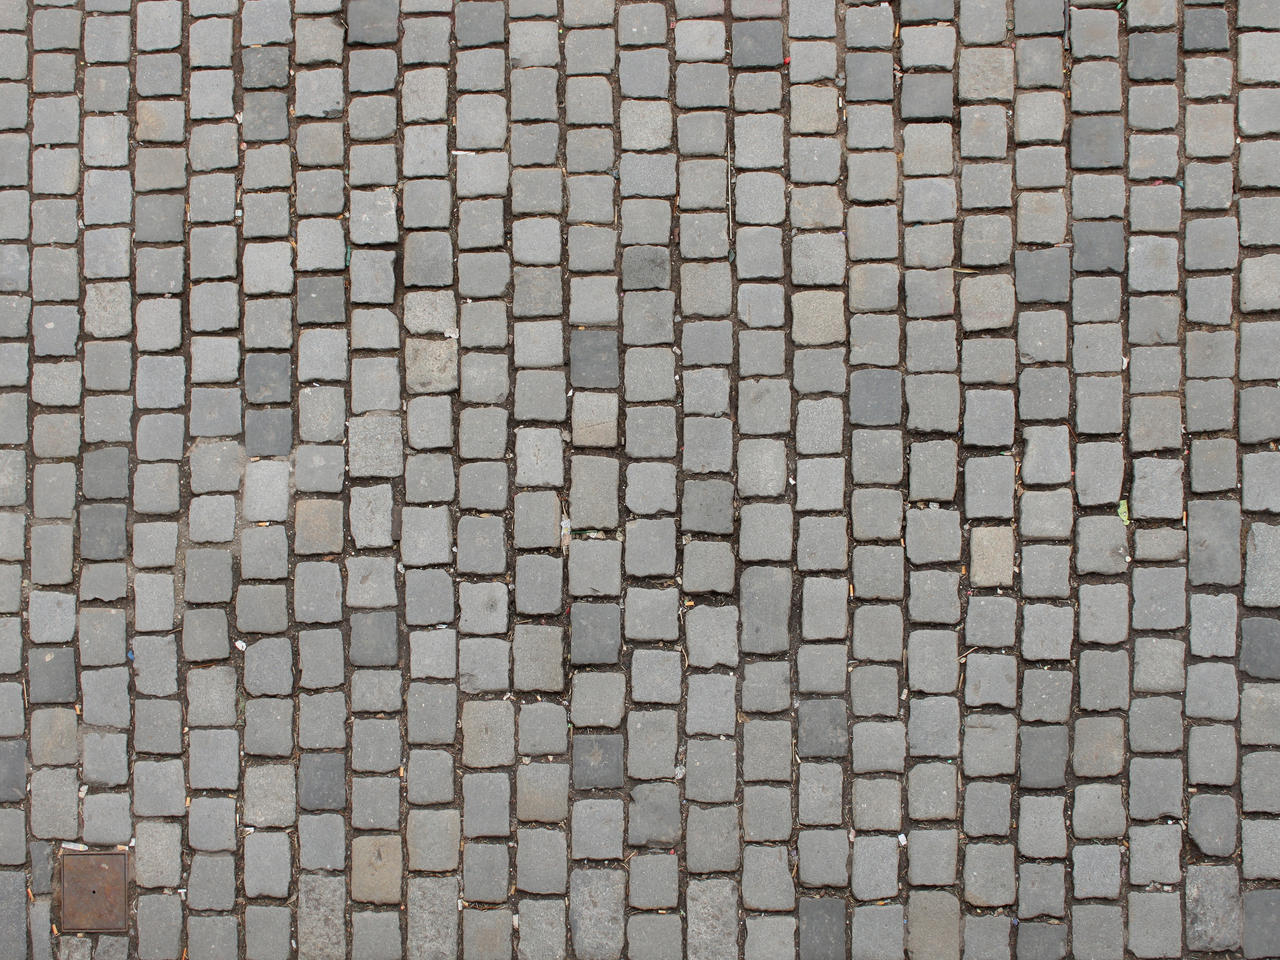 Floor Texture - 8 by AGF81 on DeviantArt